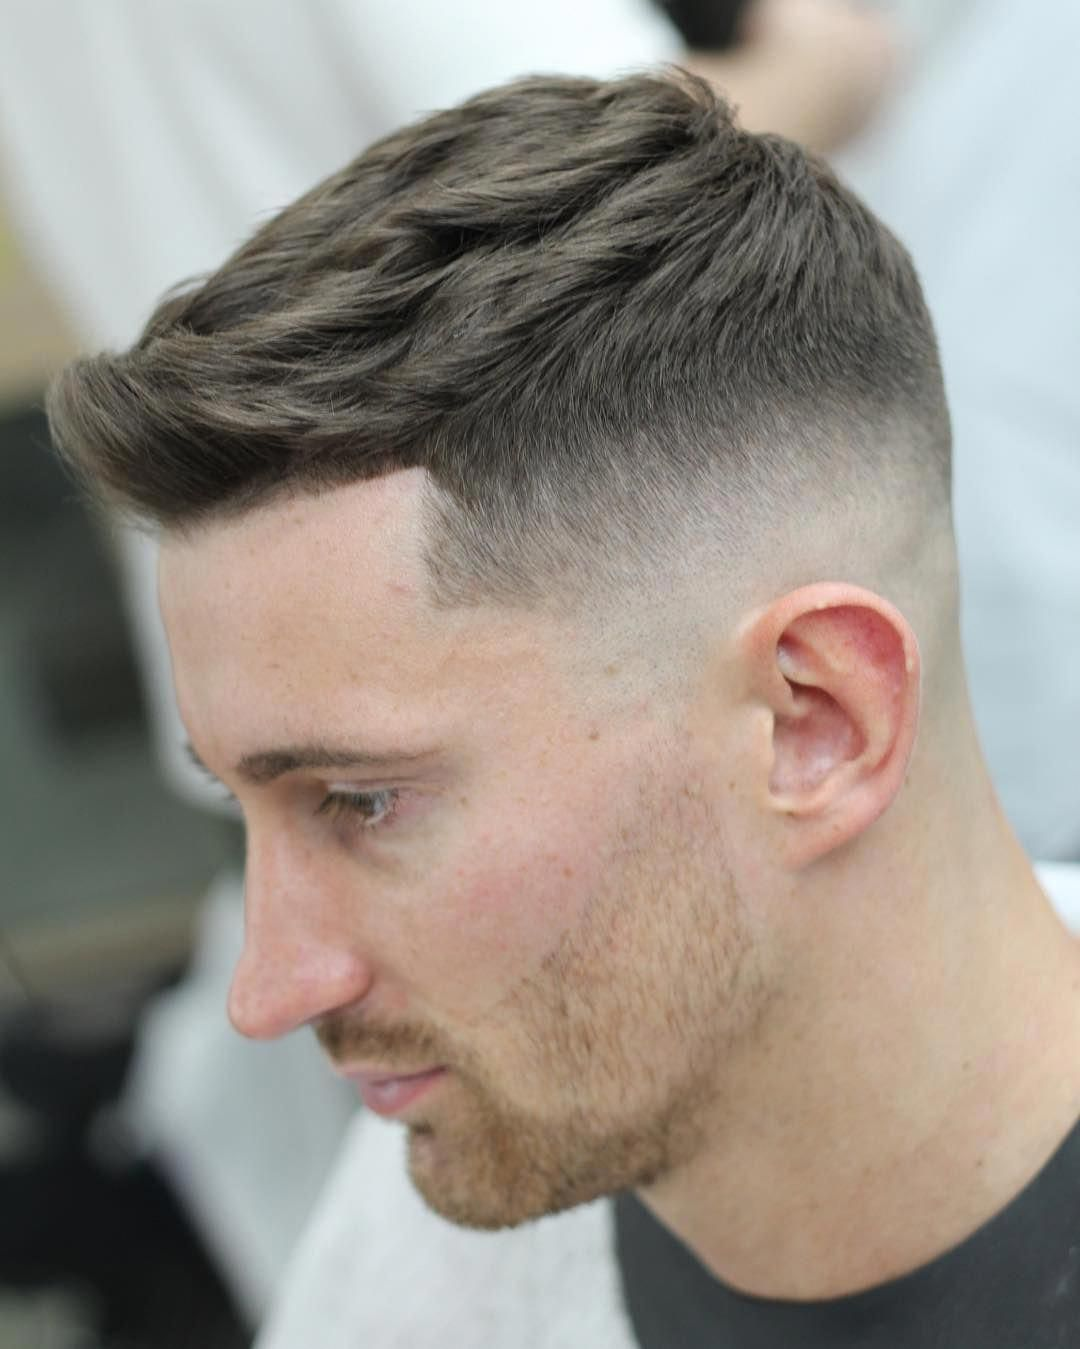 Menshairstyletrends Com The Best Men S Haircuts And Cool Hairstyles For Men To Get In 2018 Fa Cool Hairstyles For Men Mens Hairstyles Short Cool Hairstyles